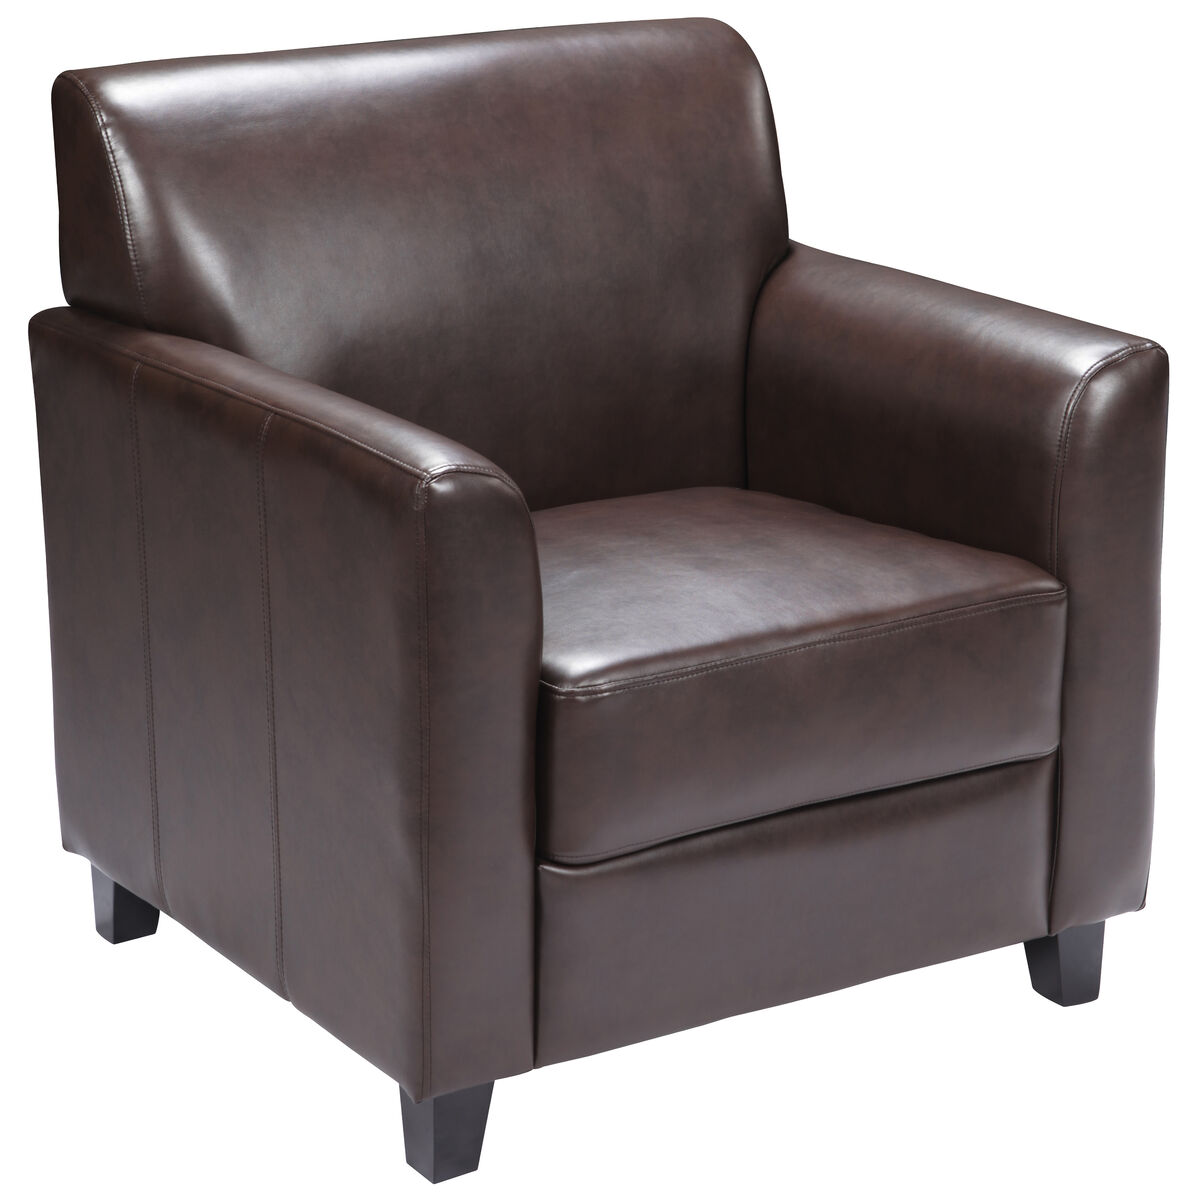 Brown Leather Chair Bt 827 1 Bn Gg